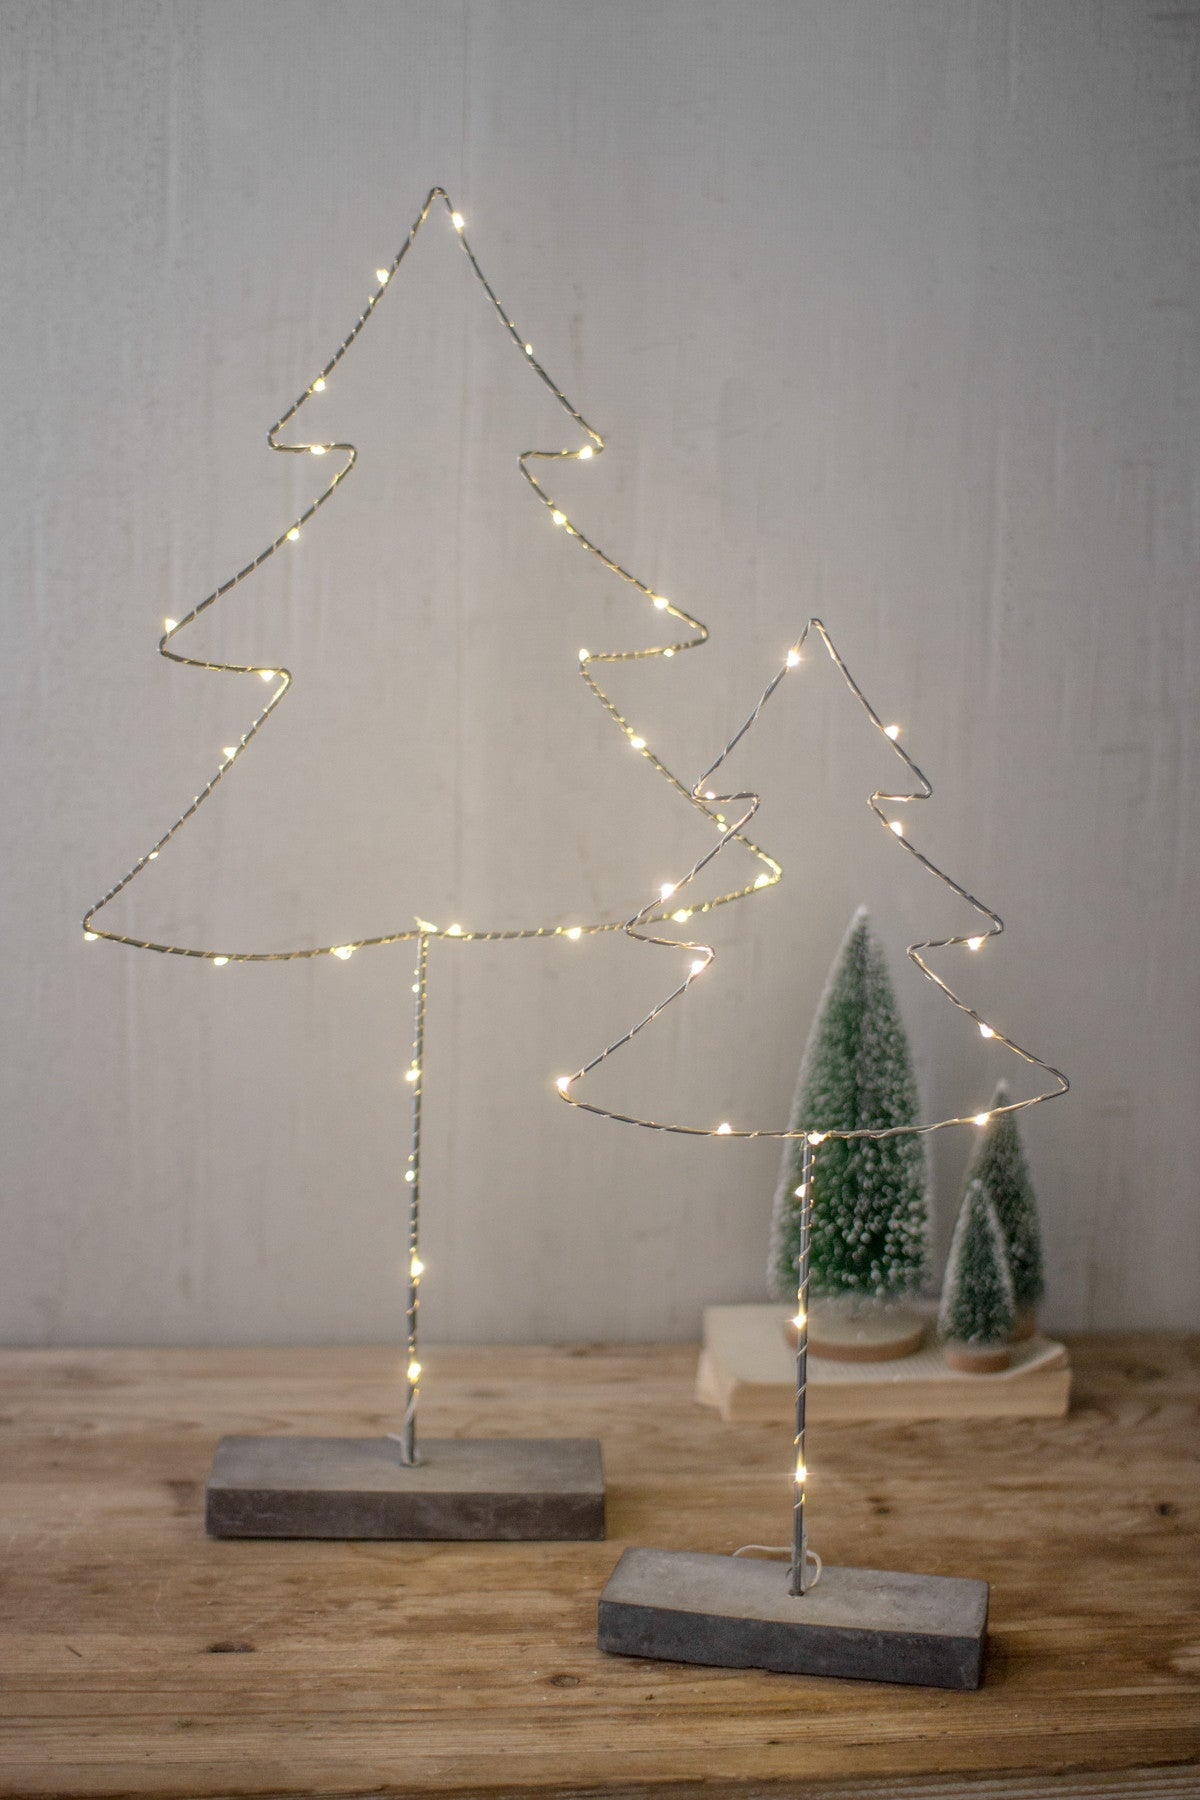 SET OF 2 METAL TREES WITH LED LIGHT AND CEMENT BASE